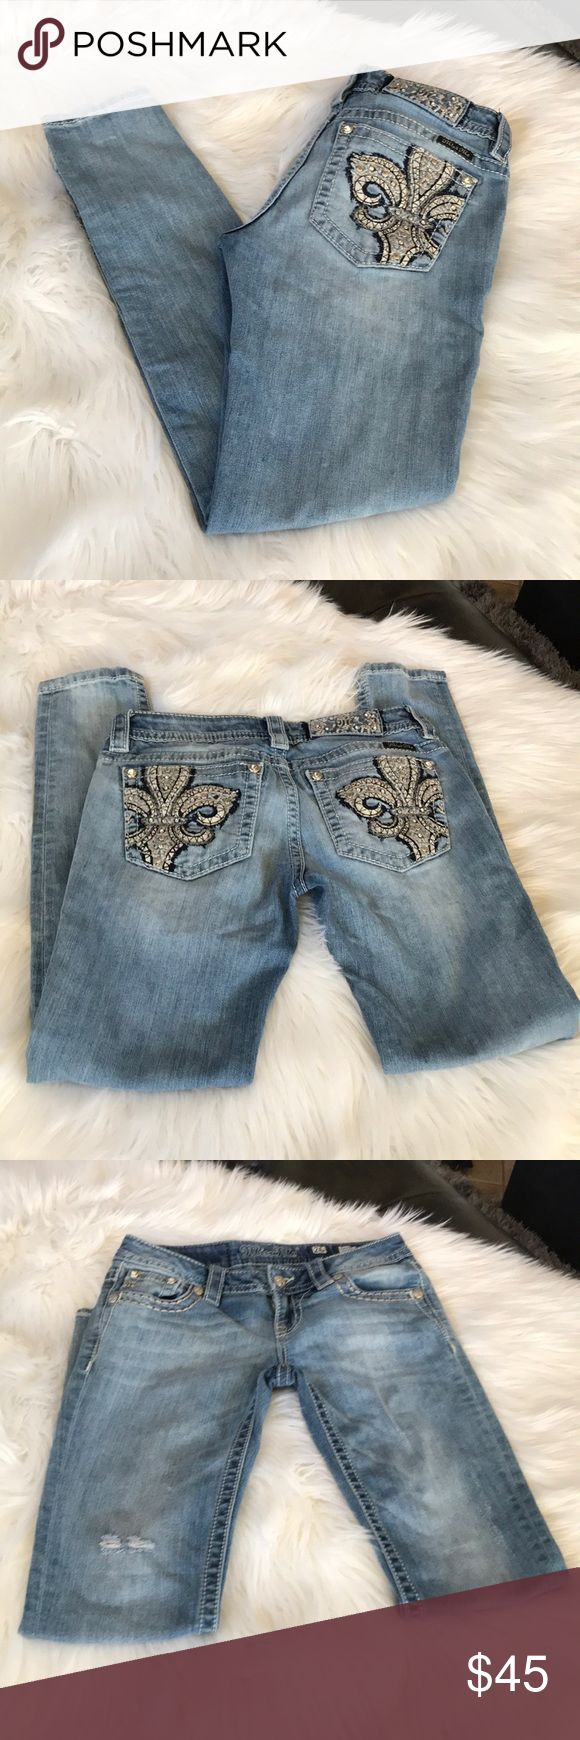 Miss Me Skinny Jeans Great condition Miss Me Skinny Jeans size 26 inseam 29 Miss Me Jeans Skinny